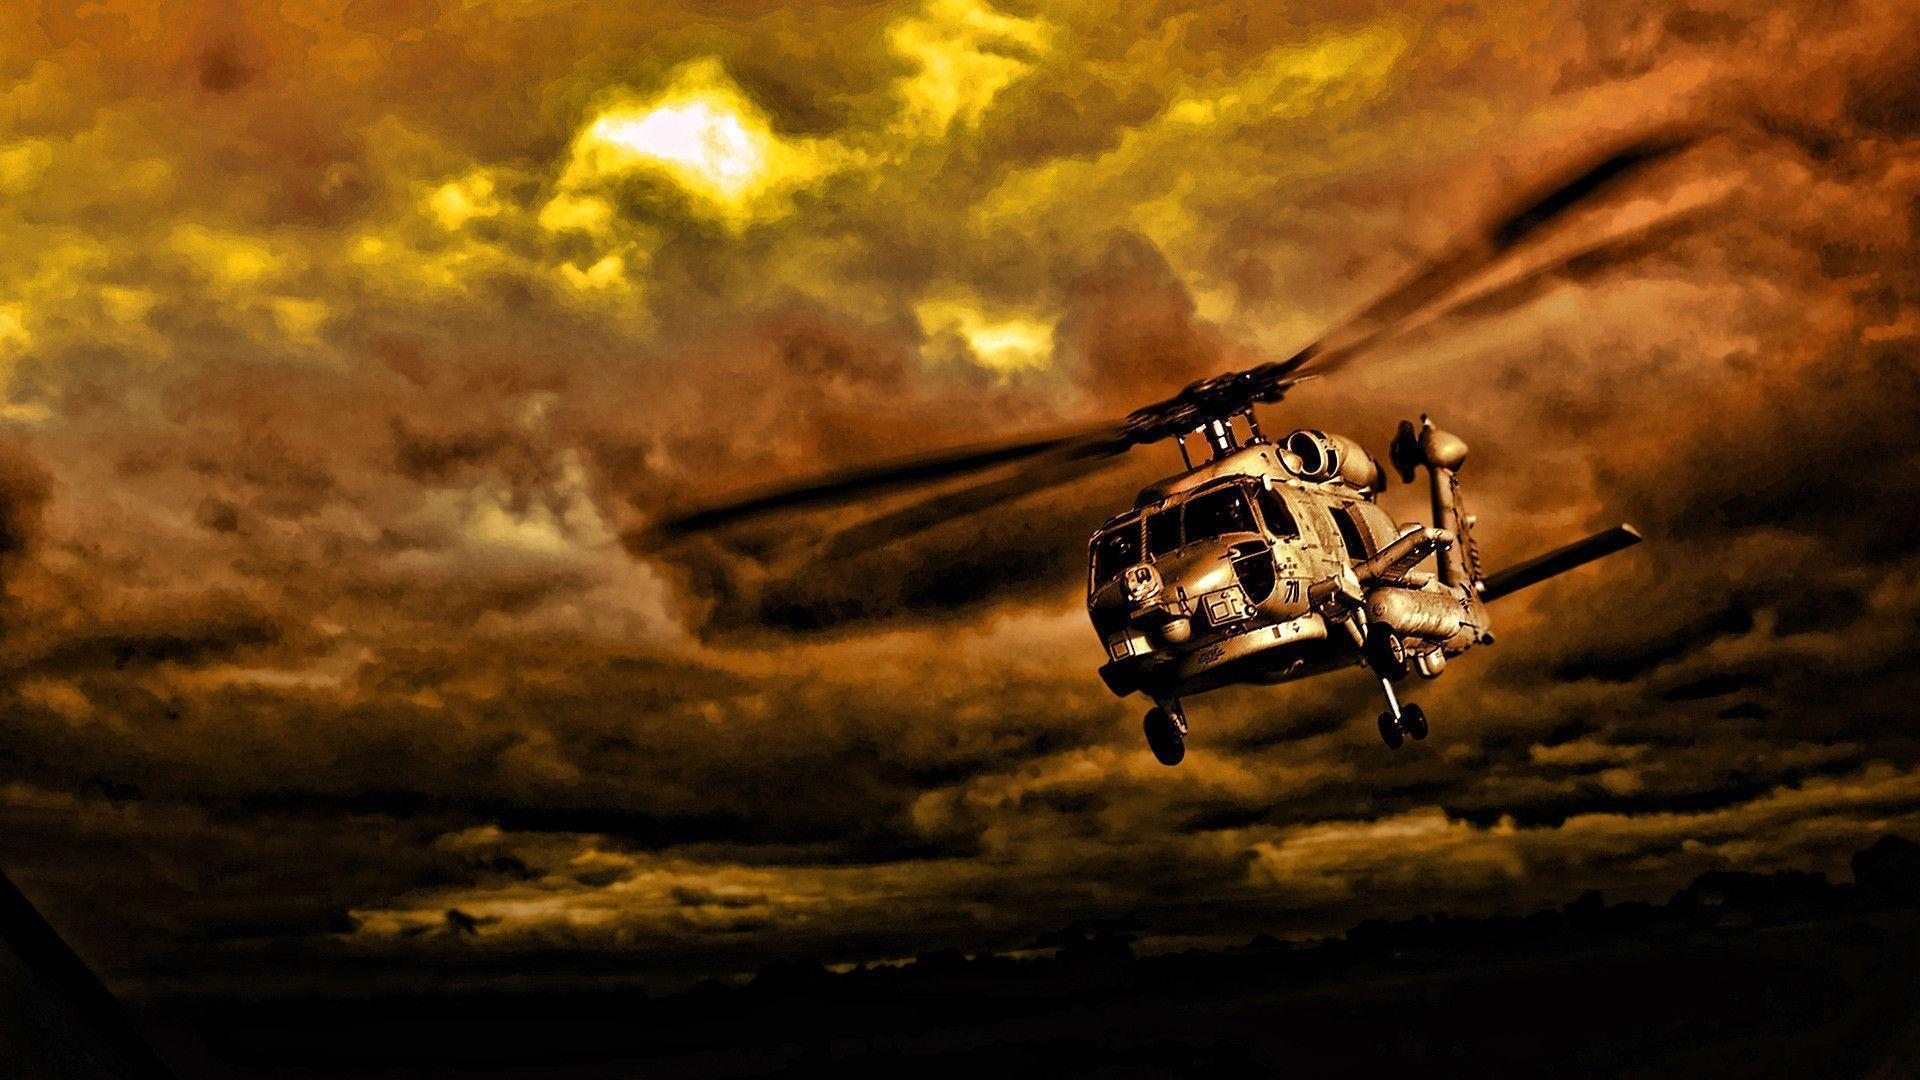 helicopter wallpaper 2 wide - photo #11